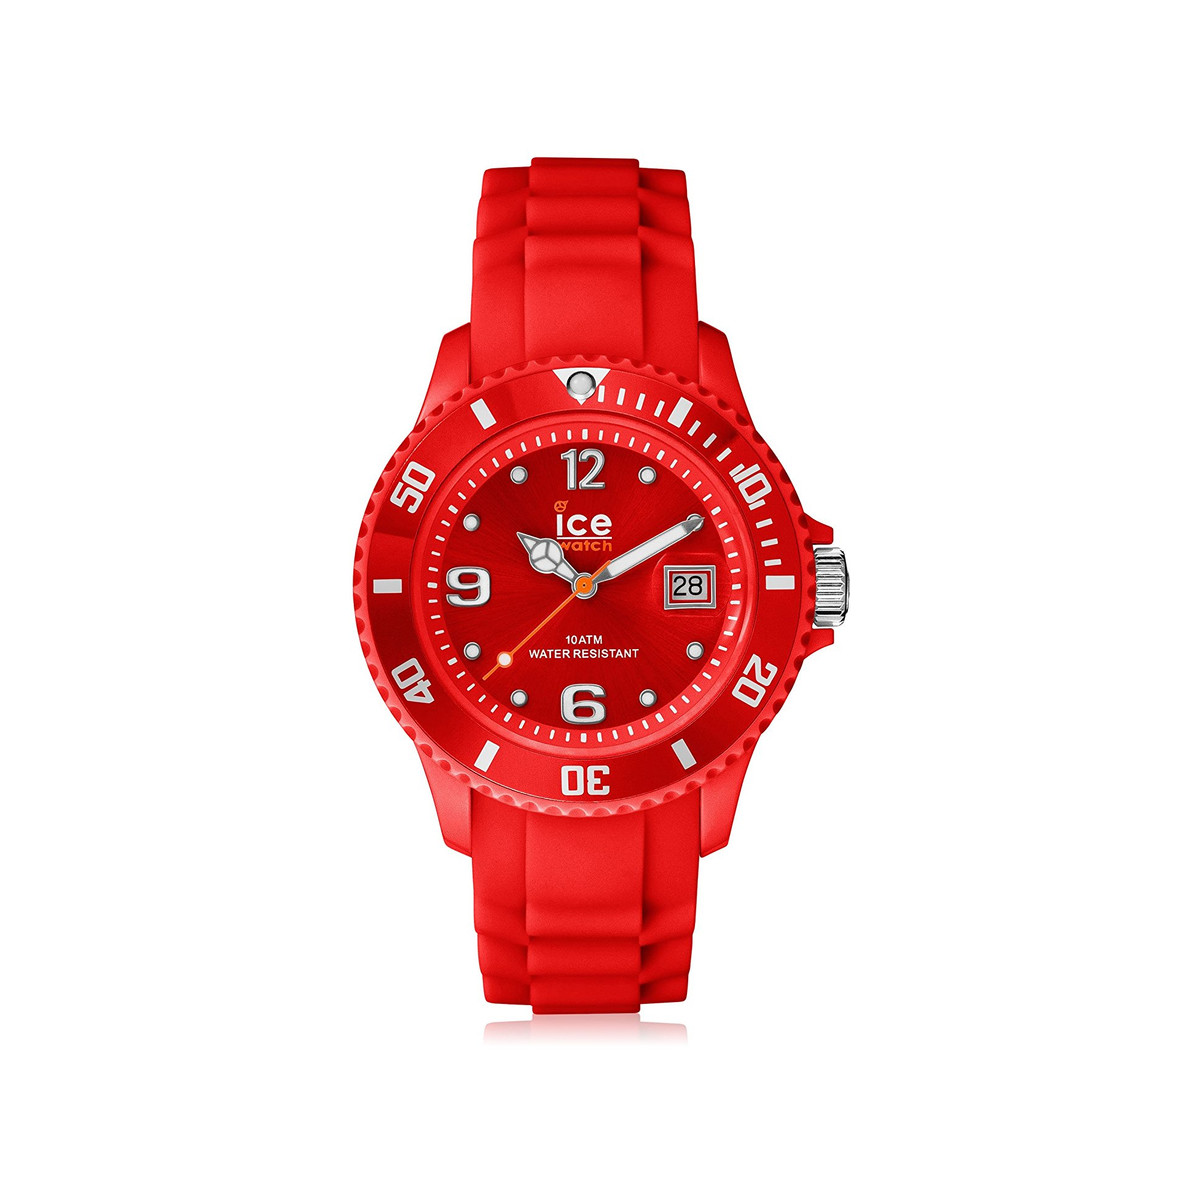 Montre Ice Watch femme plastique silicone rouge